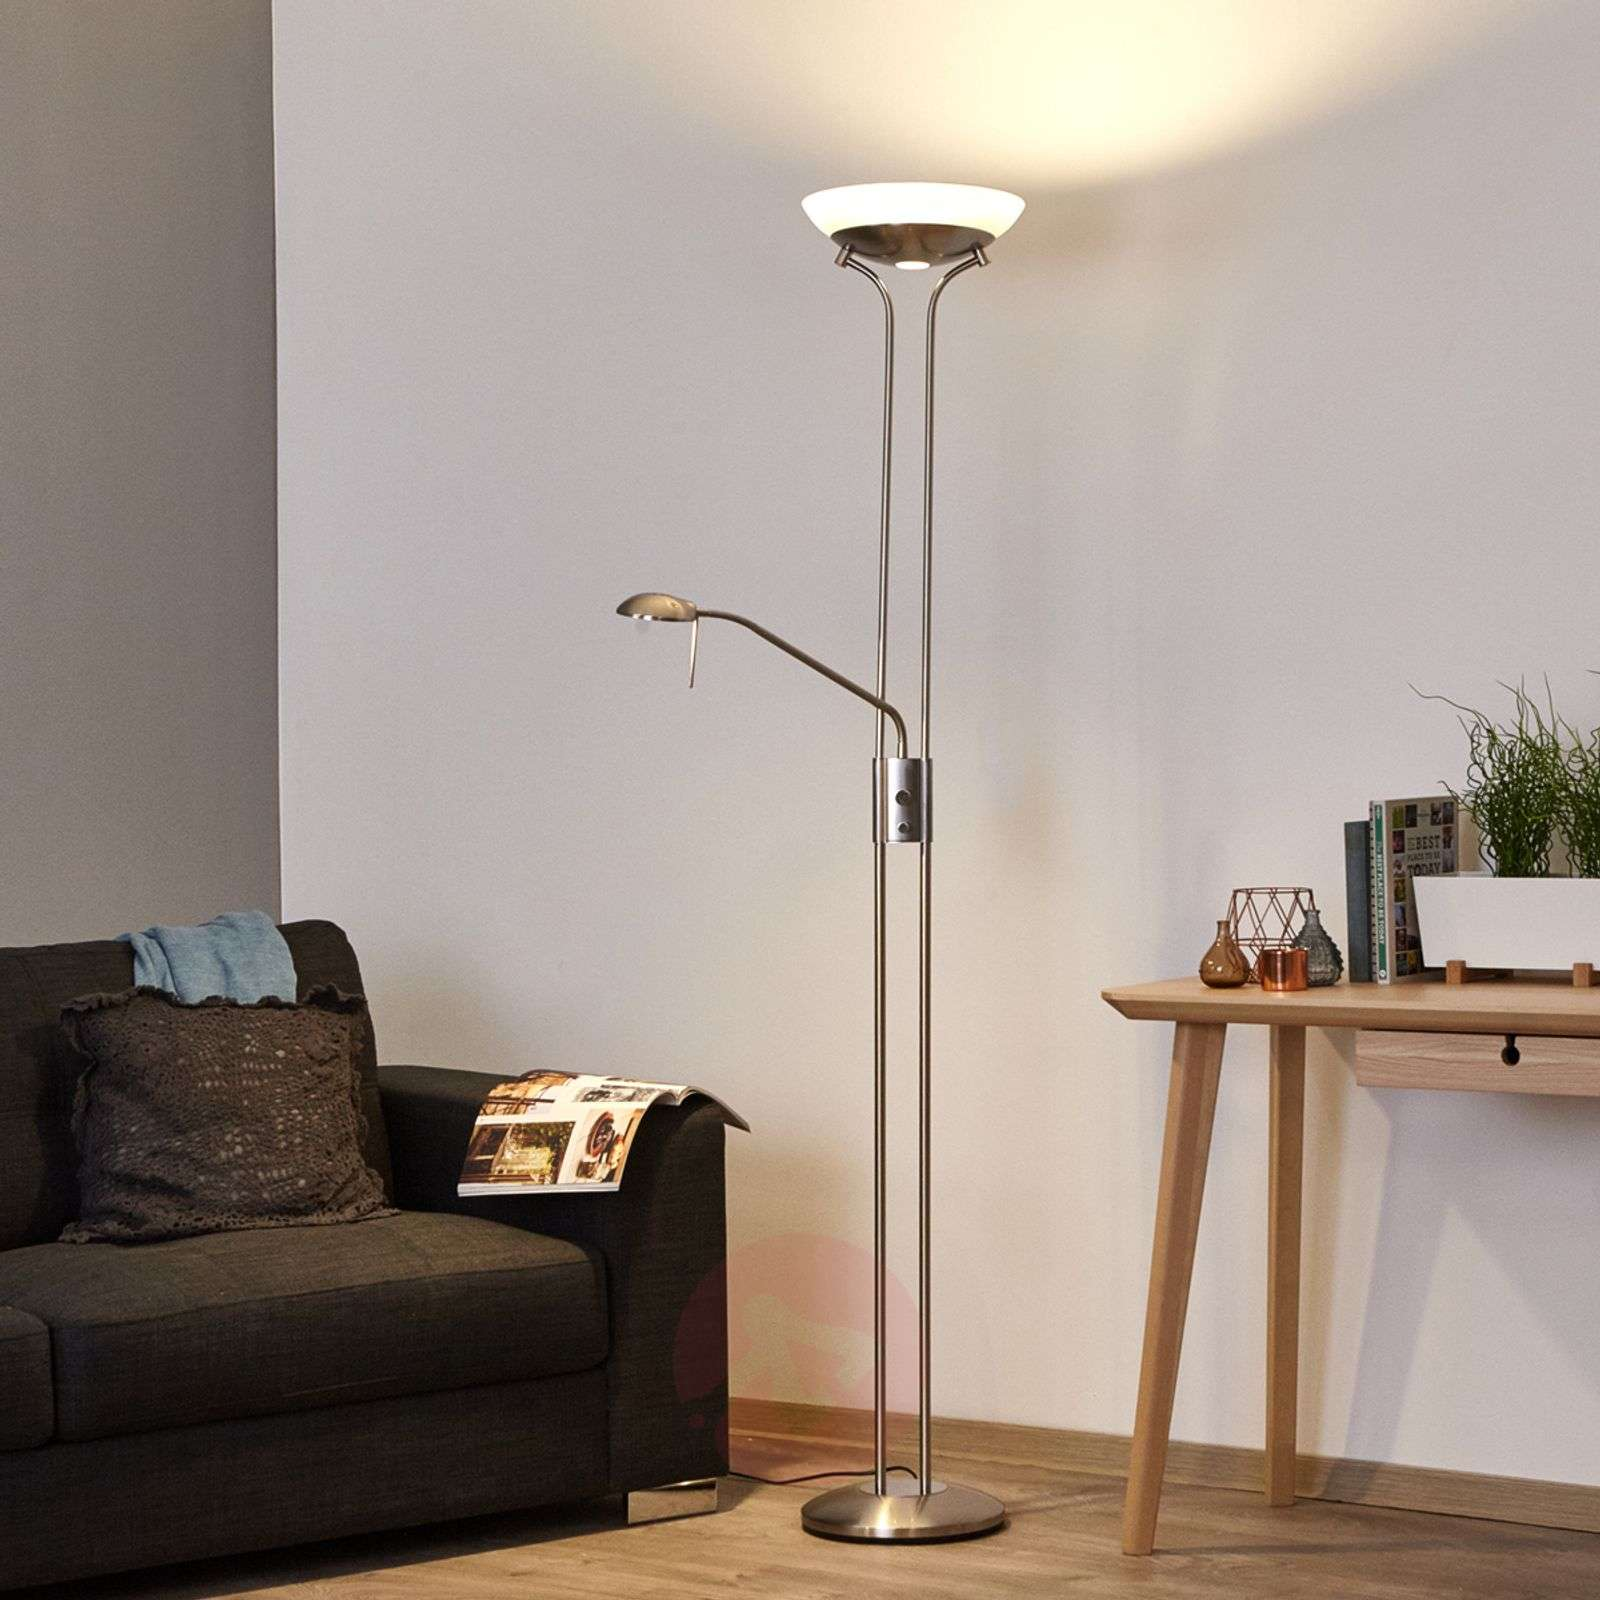 Lampadaire à éclairage indirect LED Denise-9945068-05